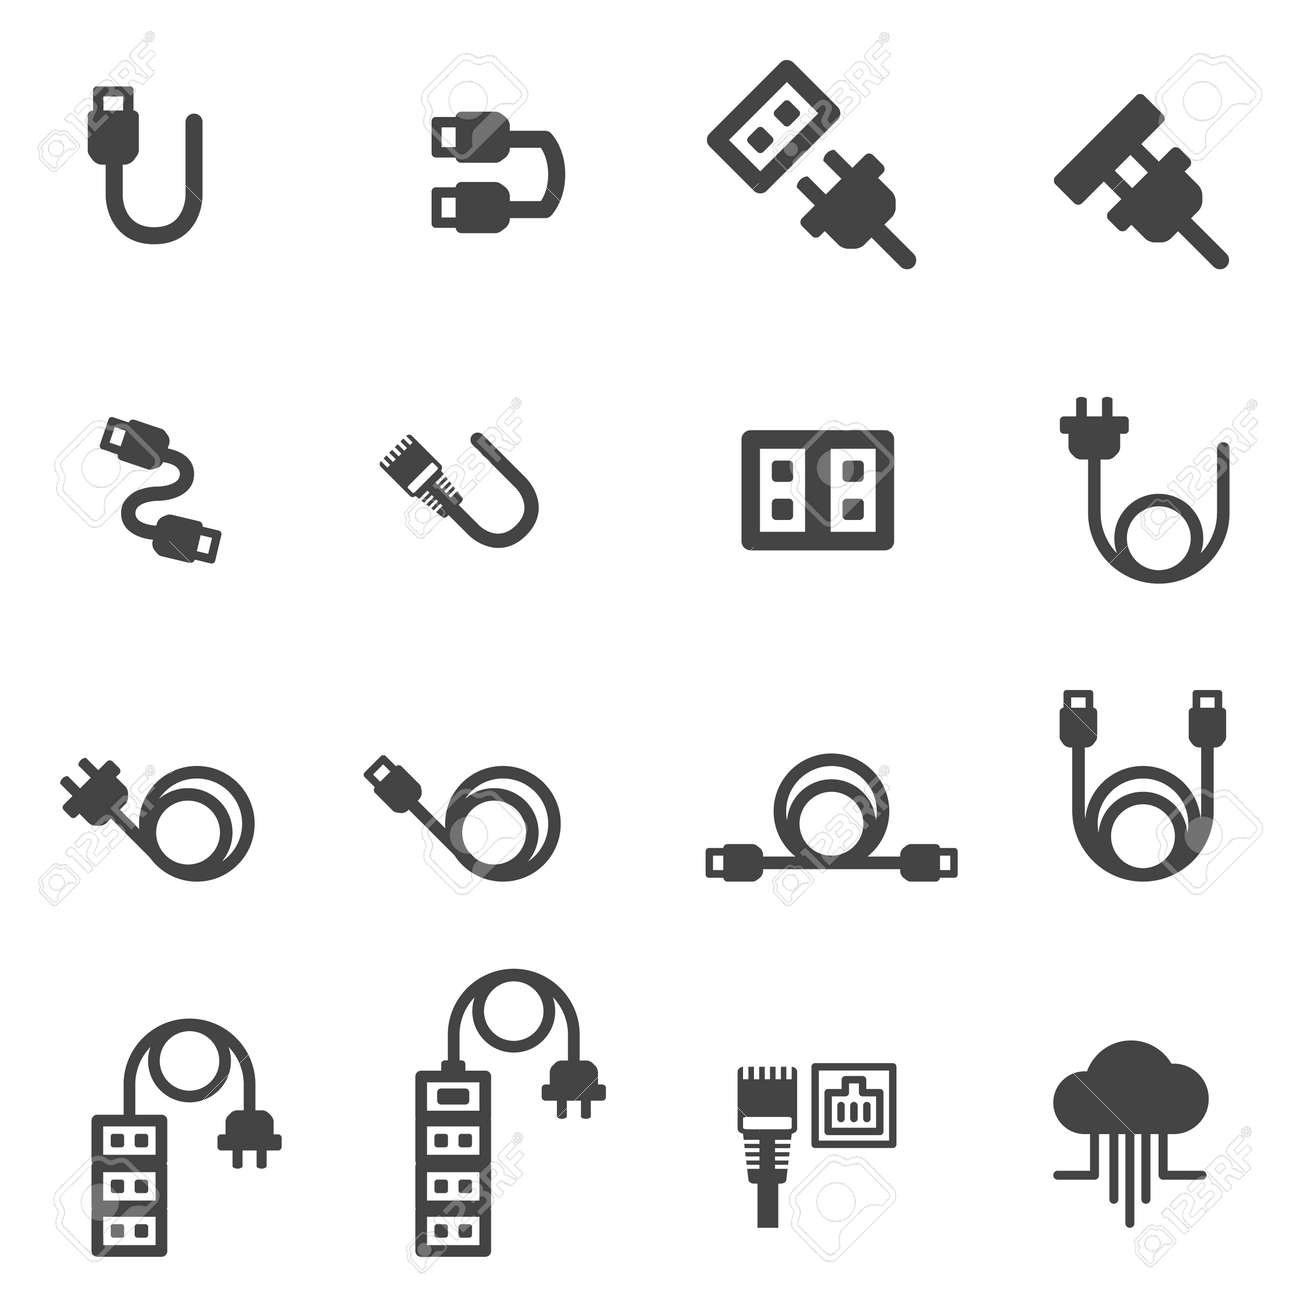 cable icons vector illustration - 80926857